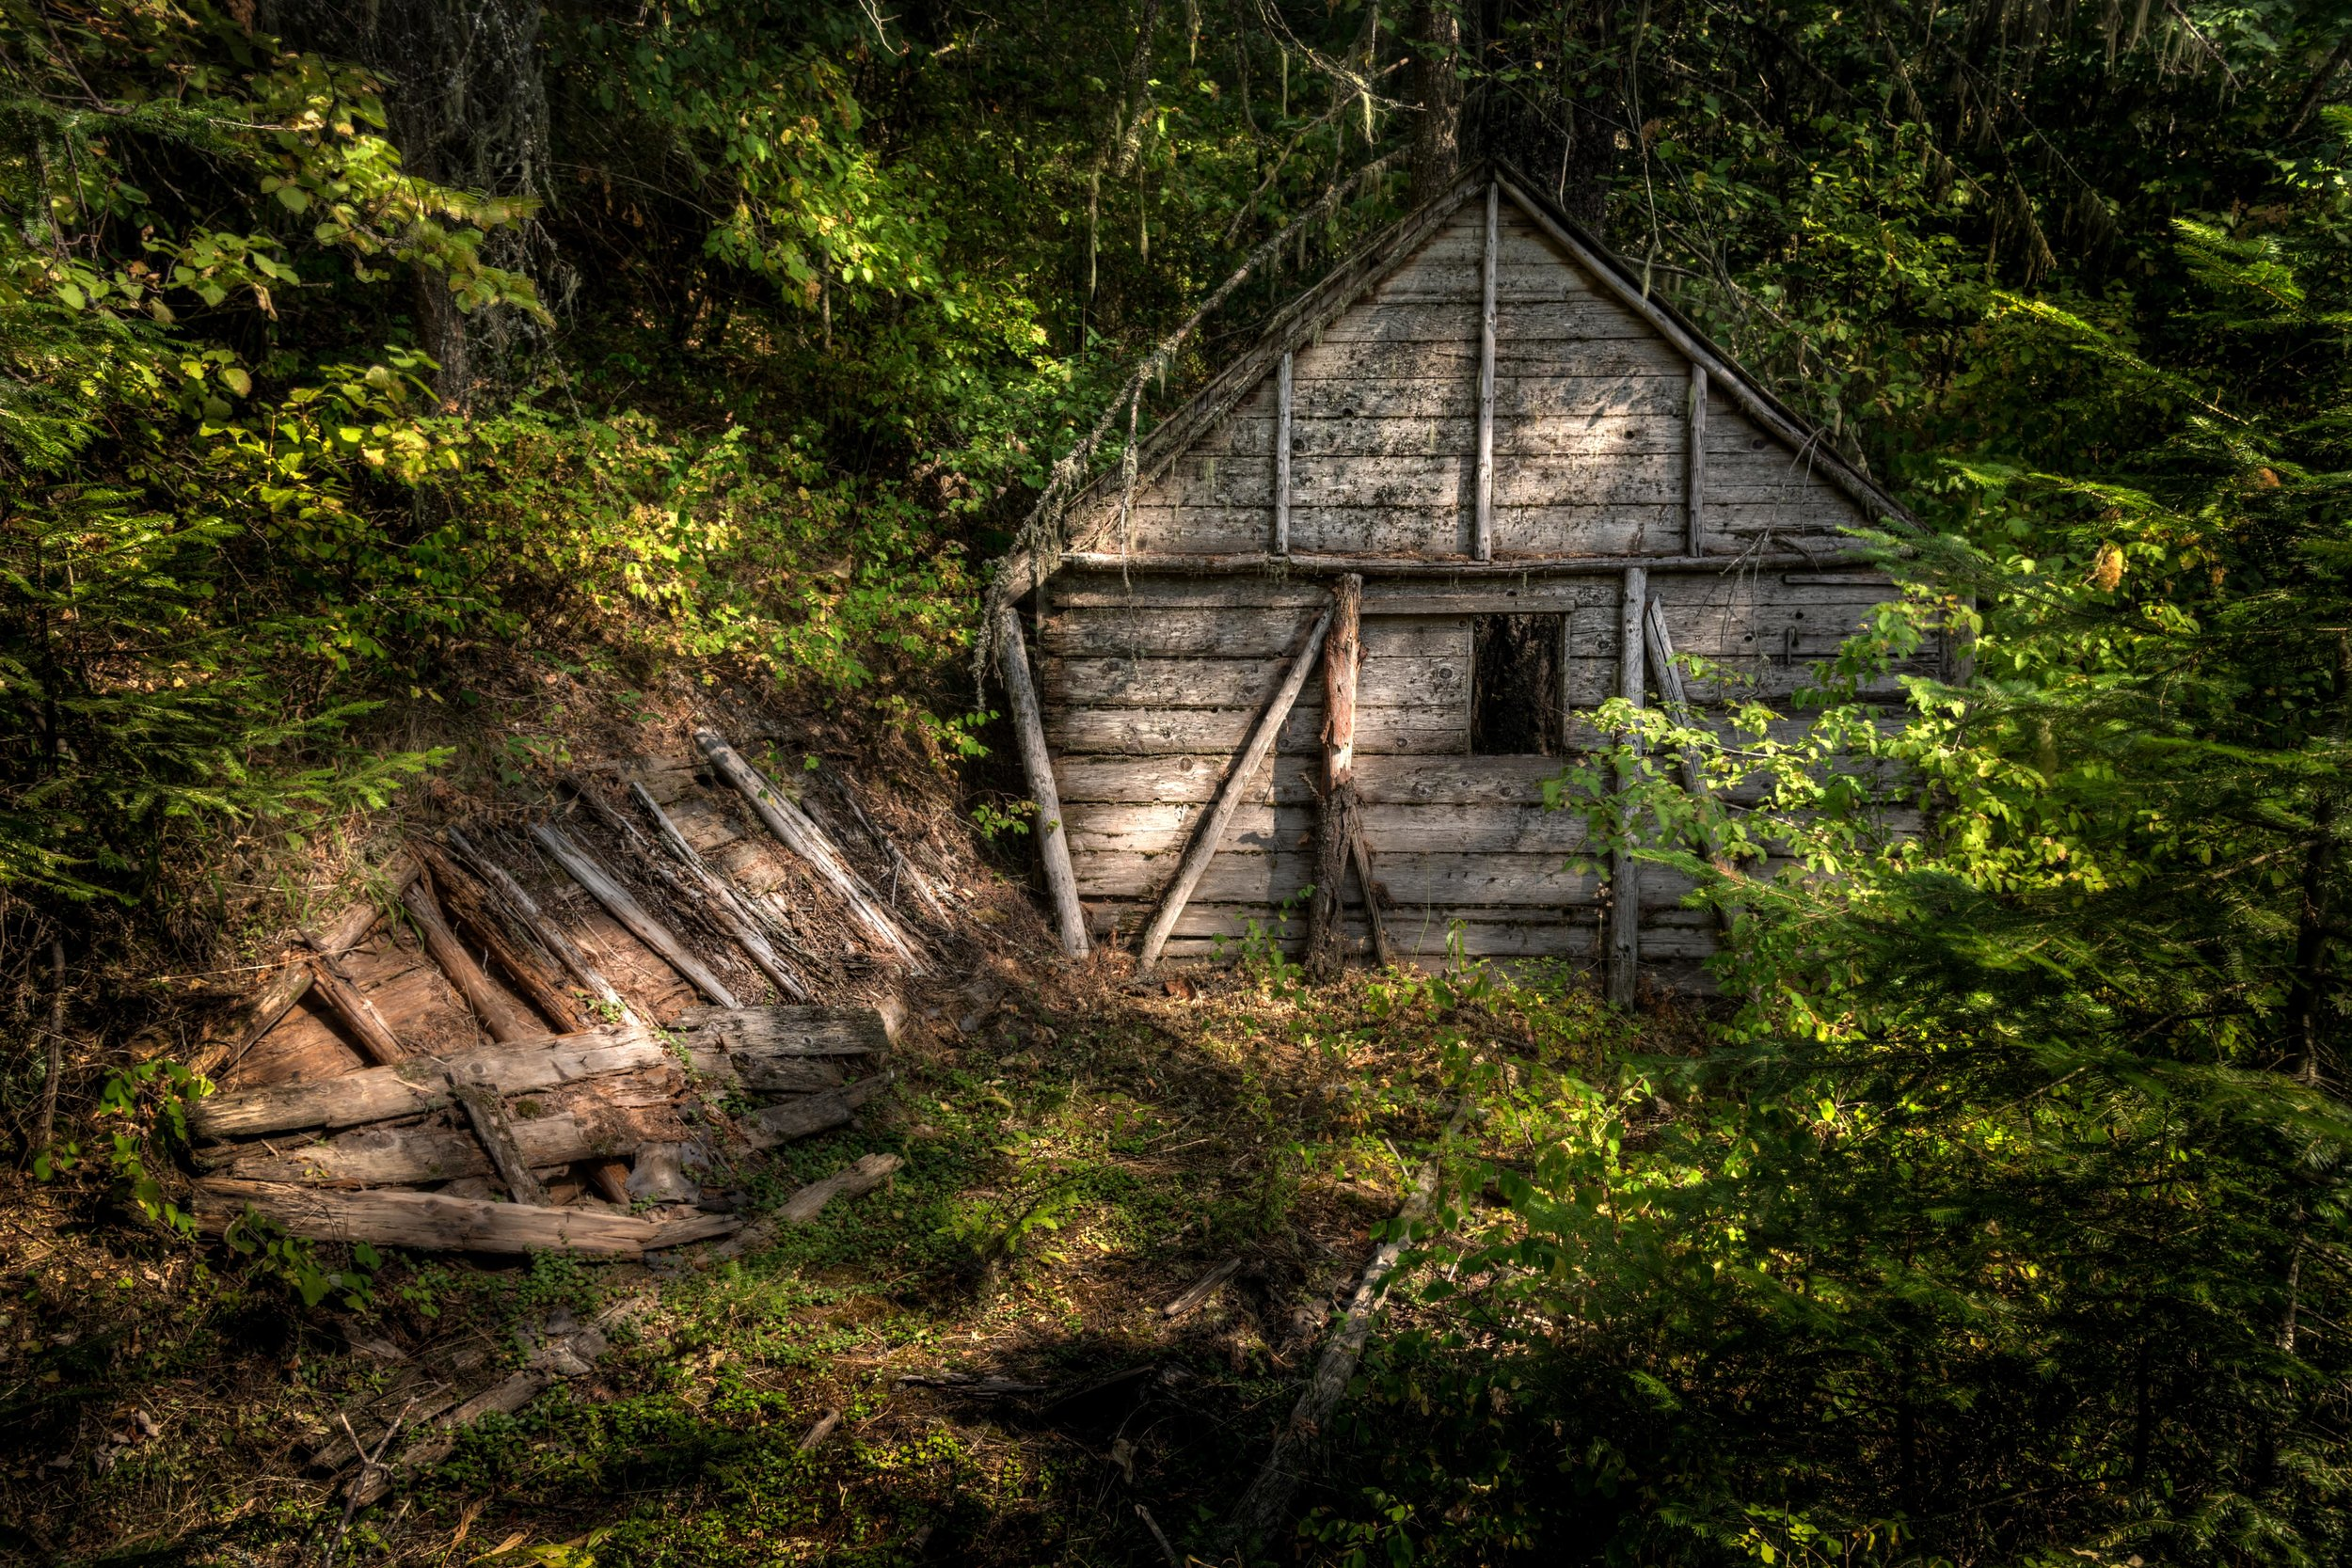 Remnants of a Cabin